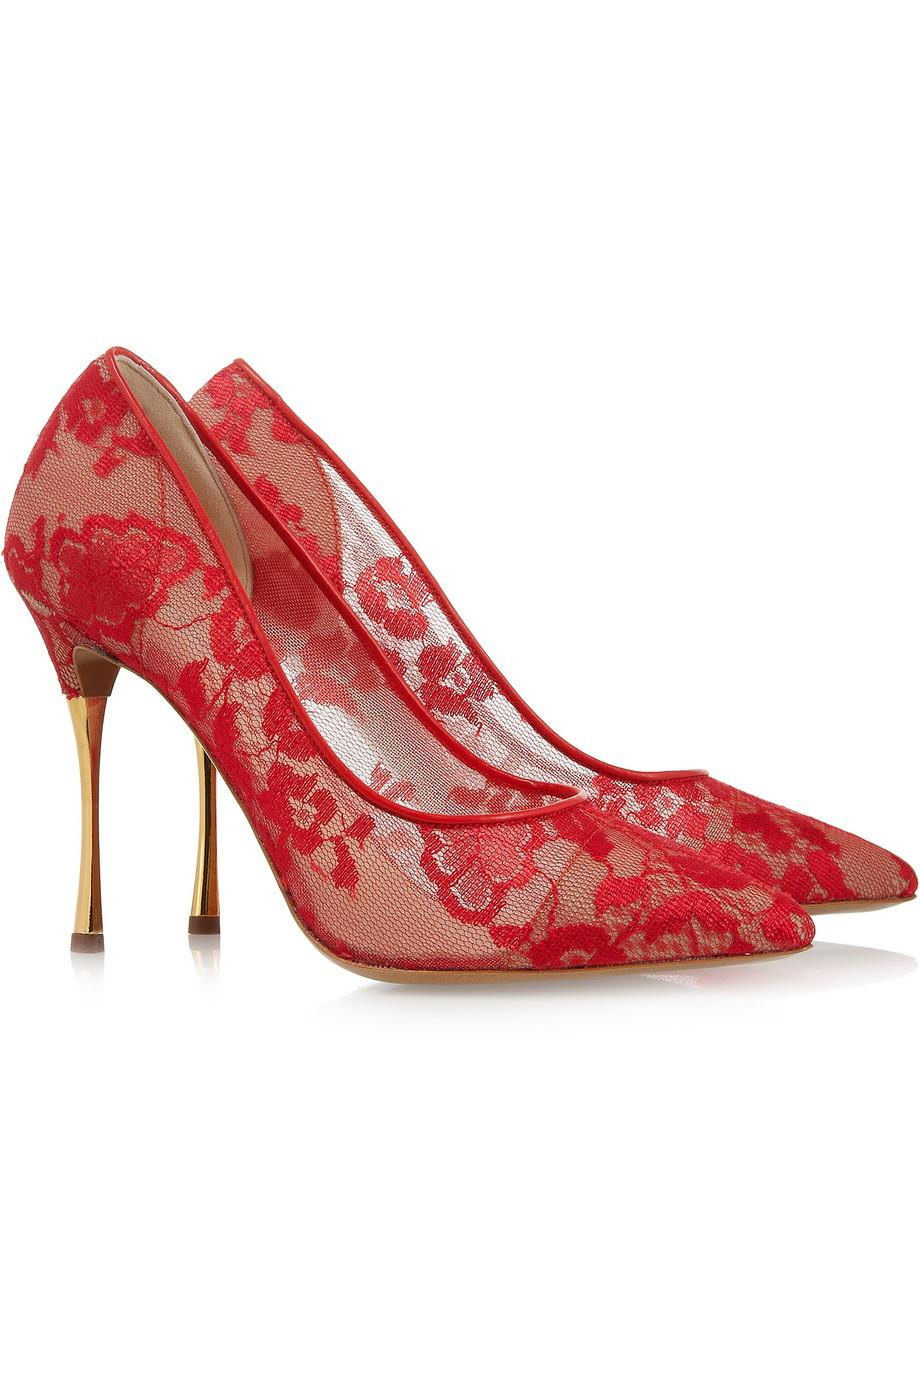 Fiery Red Lace and Gold Indian Wedding Shoes